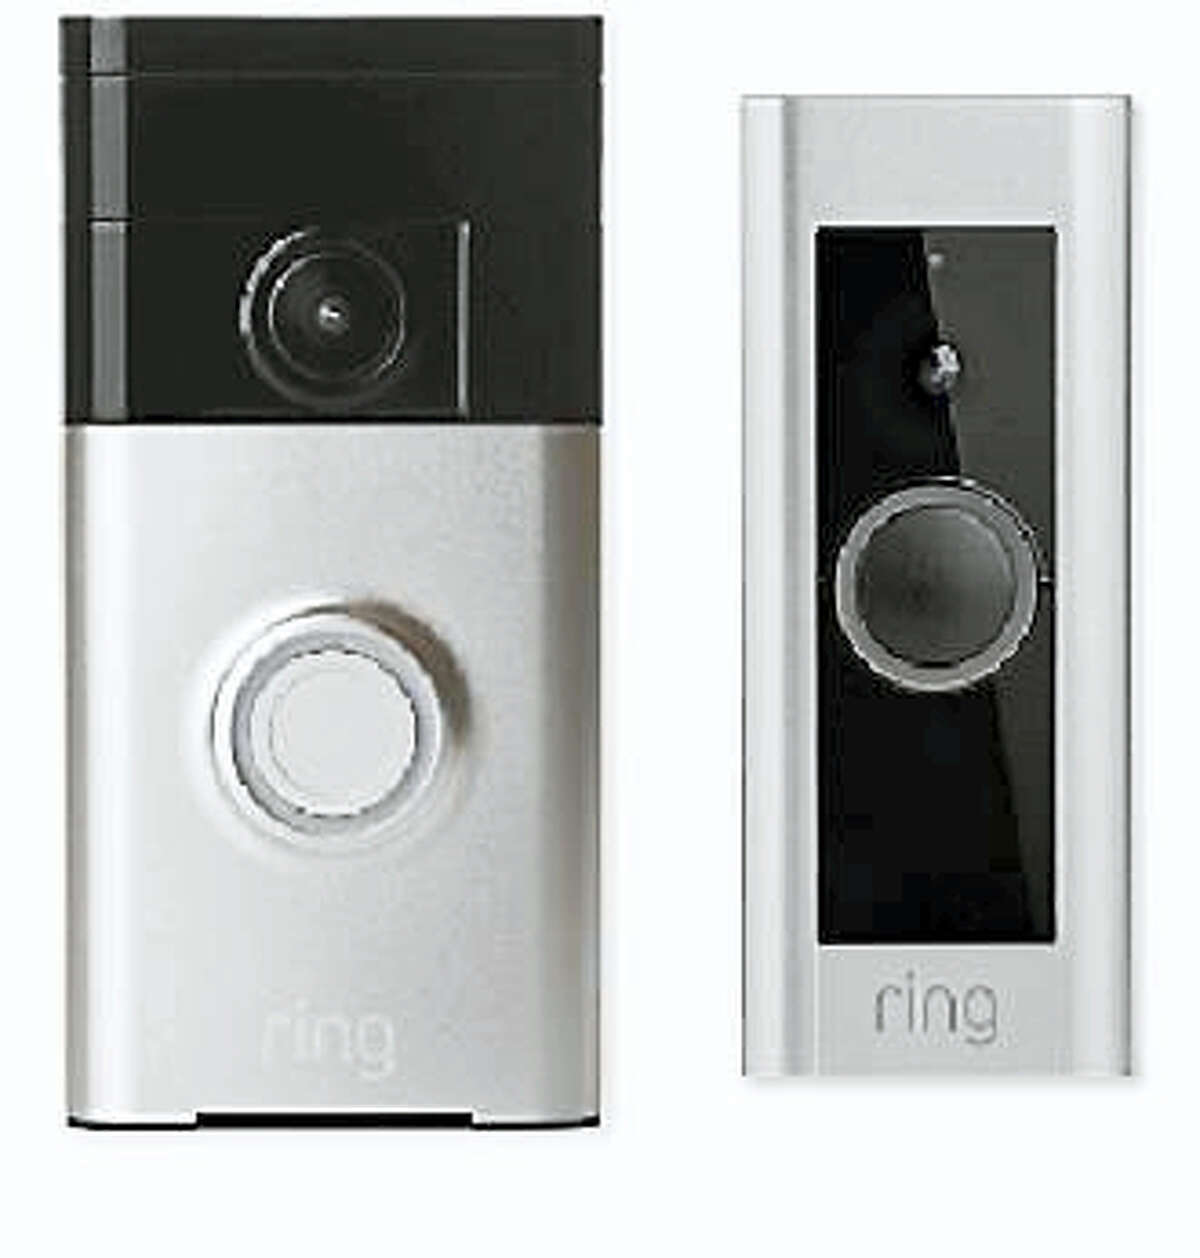 California-based Ring produces two models of doorbells. One such doorbell helped Milford police apprehended a man who allegedly attempted to break into a city home multiple times.